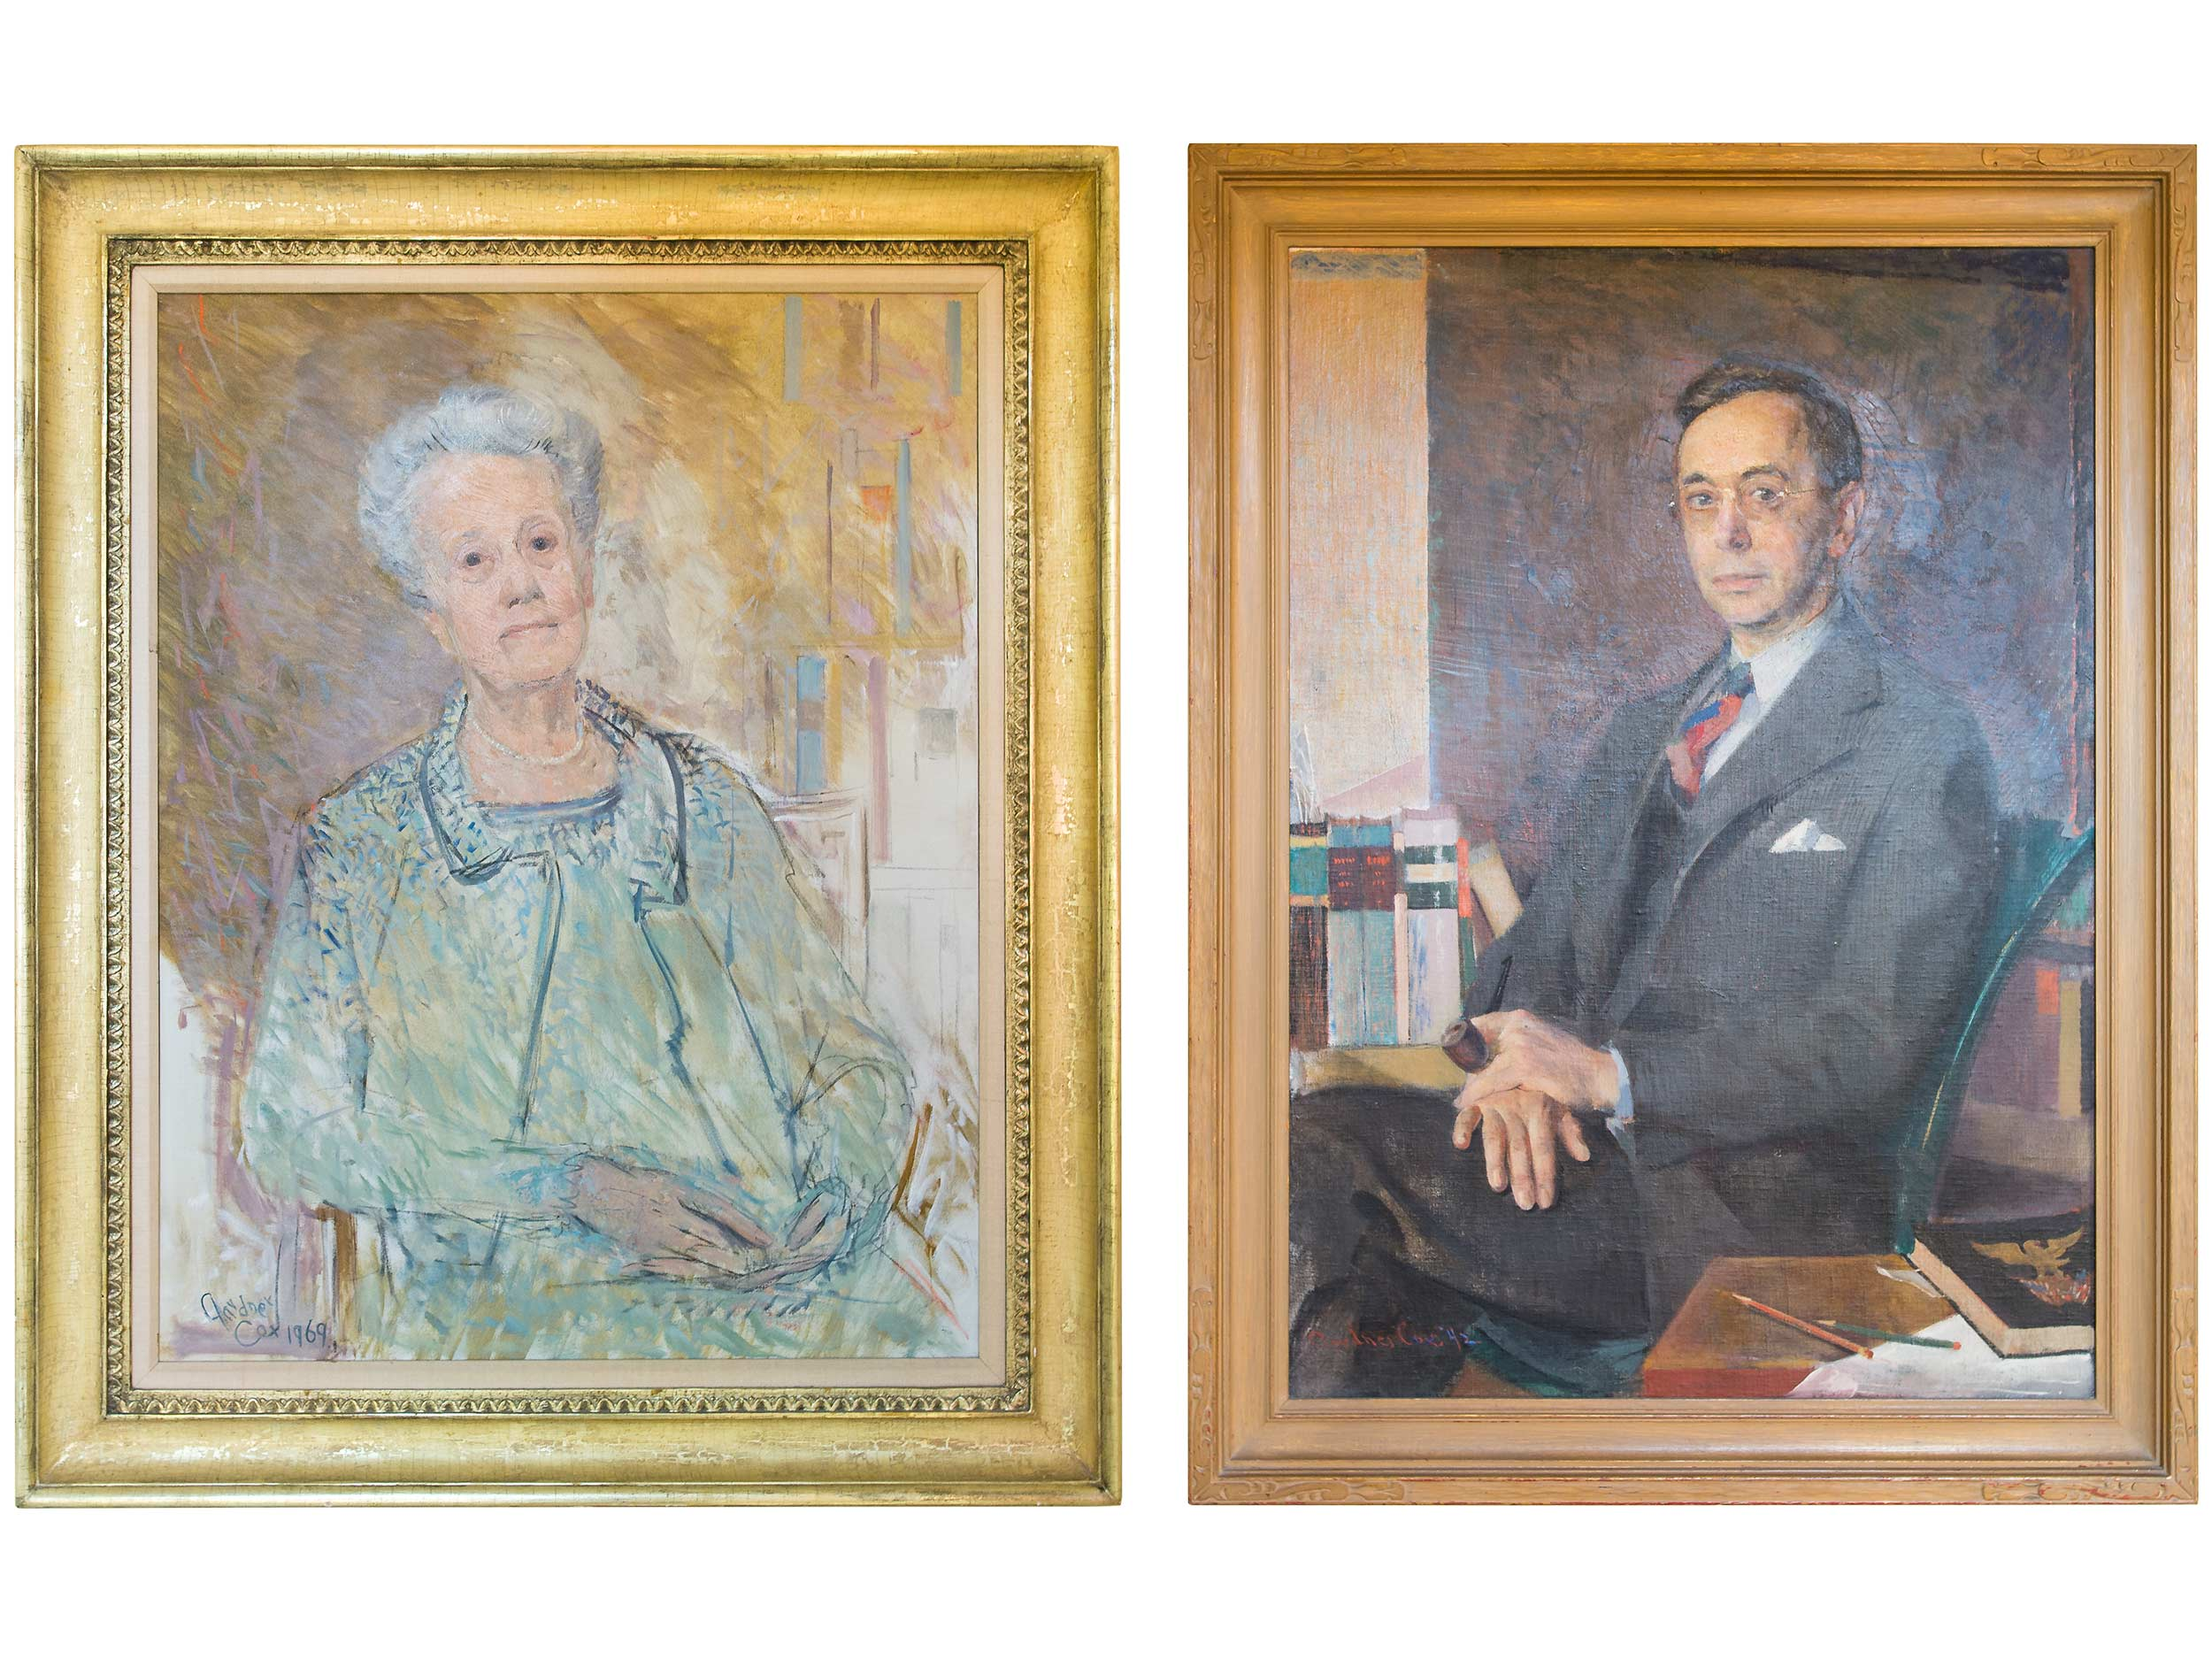 Oil portraits by Gardner Cox, 1969 and 1942